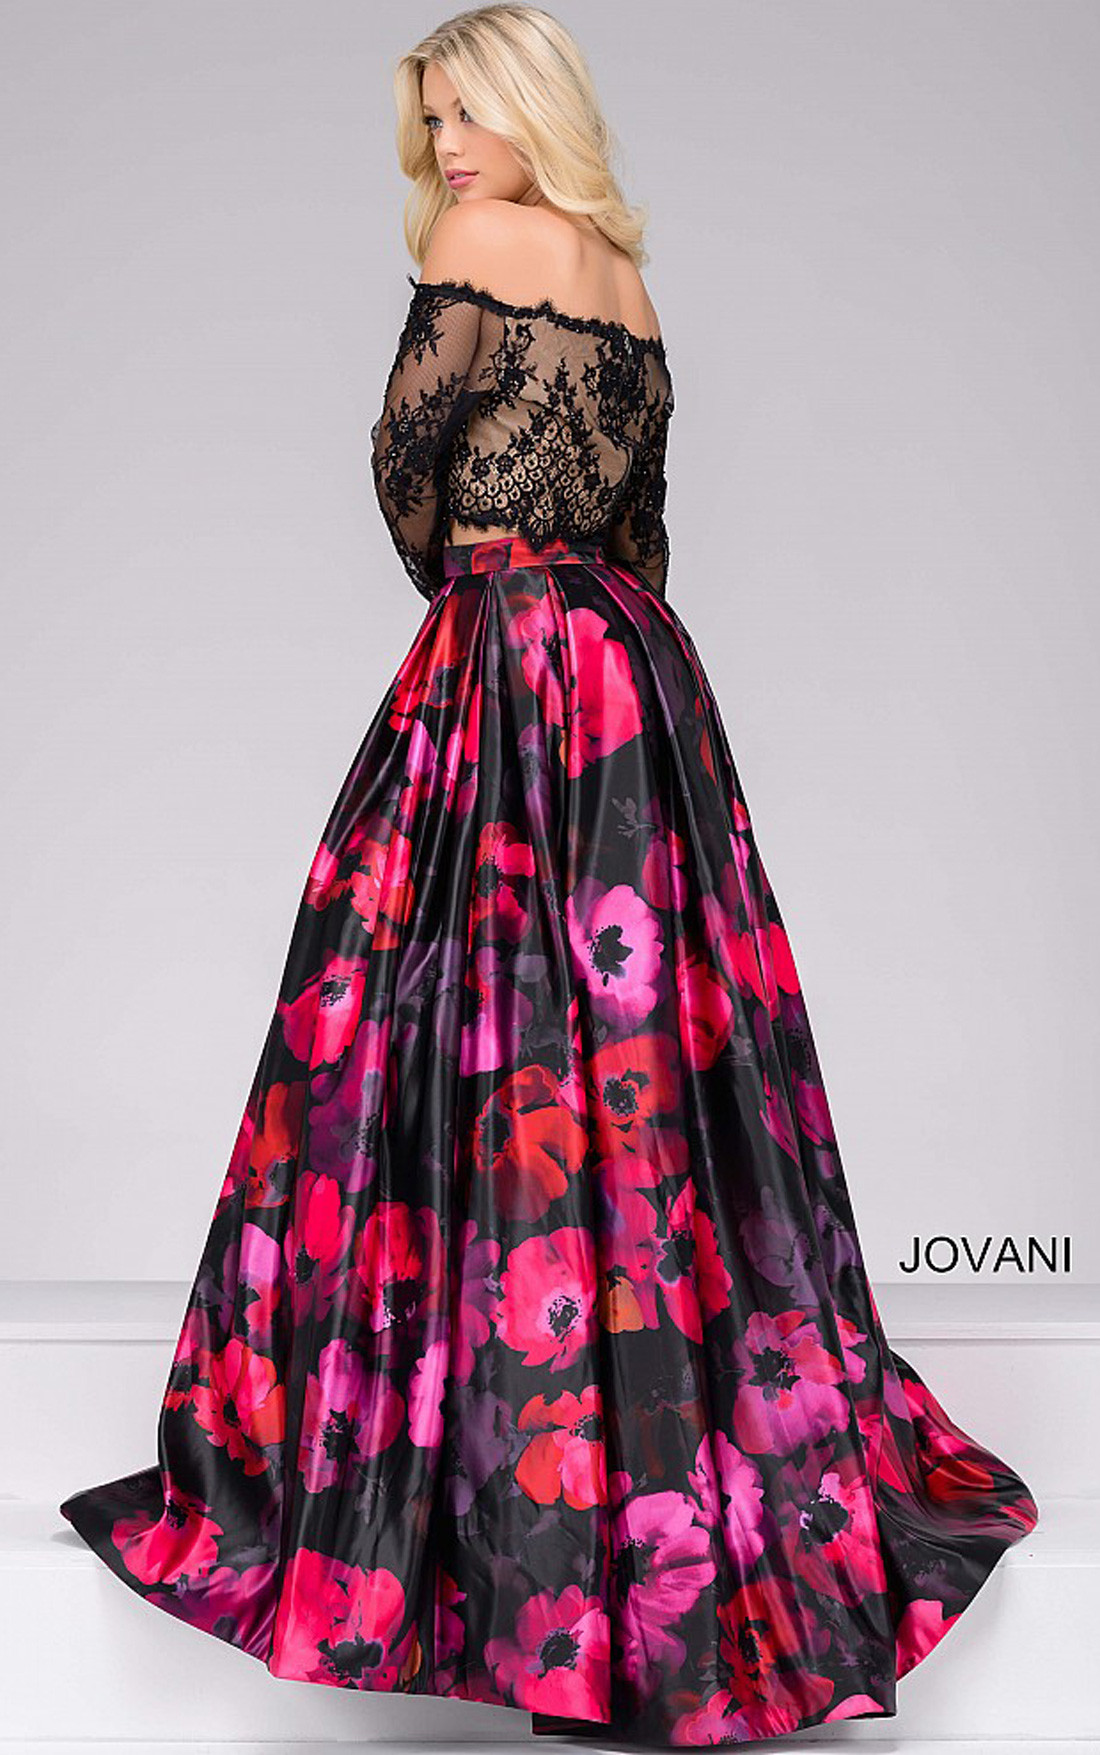 Jovani Dresses Womens Black And Multi Floral Print Two